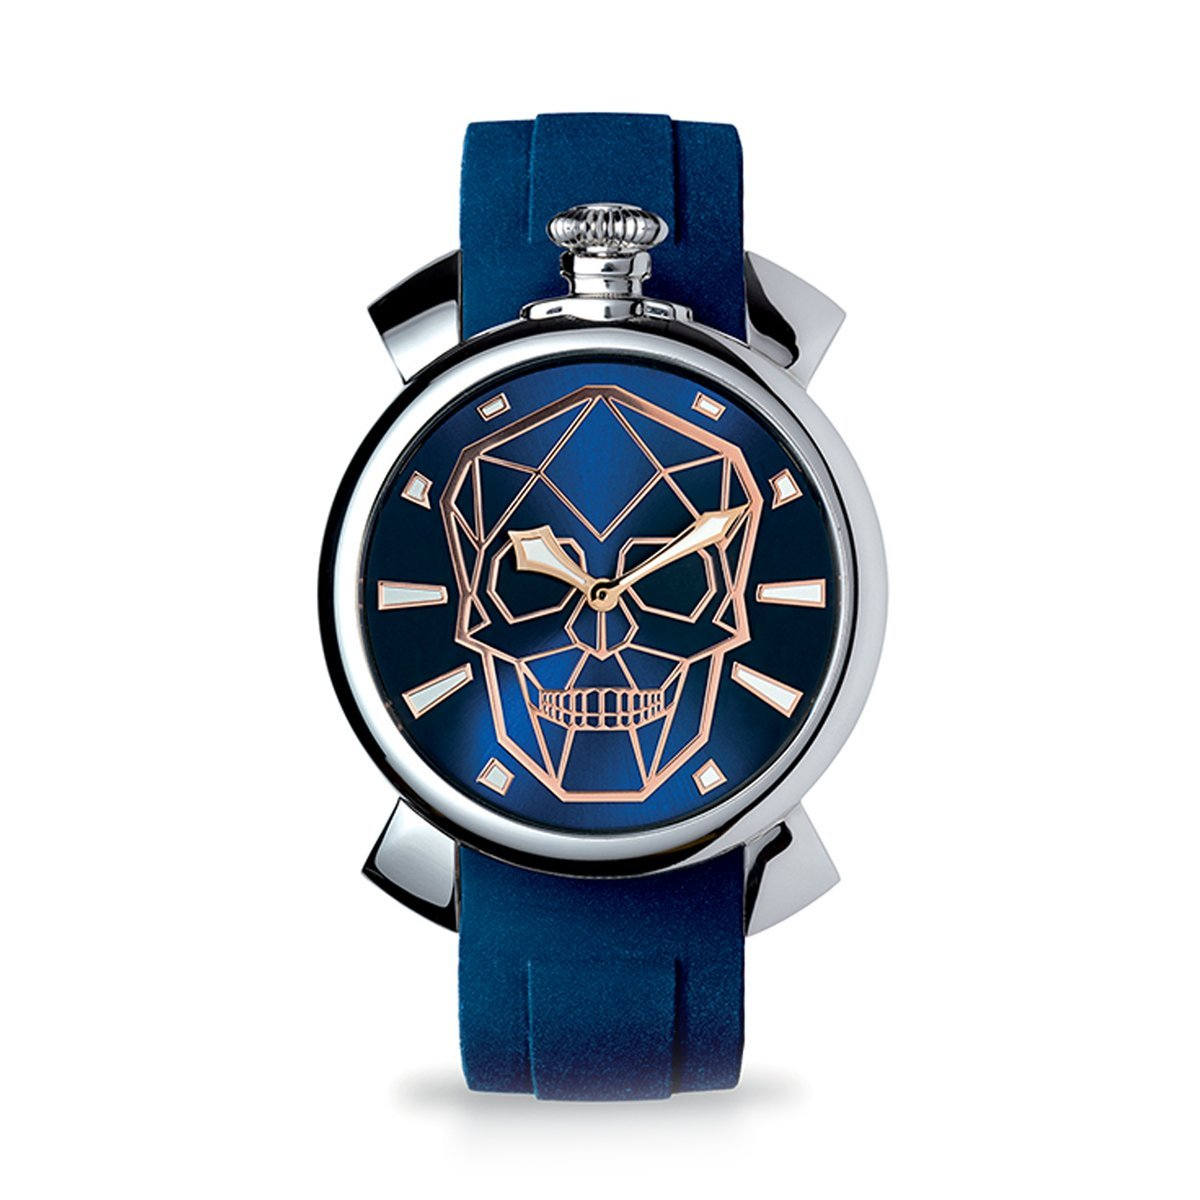 Gaga Milano Slim 46 Bionic Skull Blue - Watches & Crystals